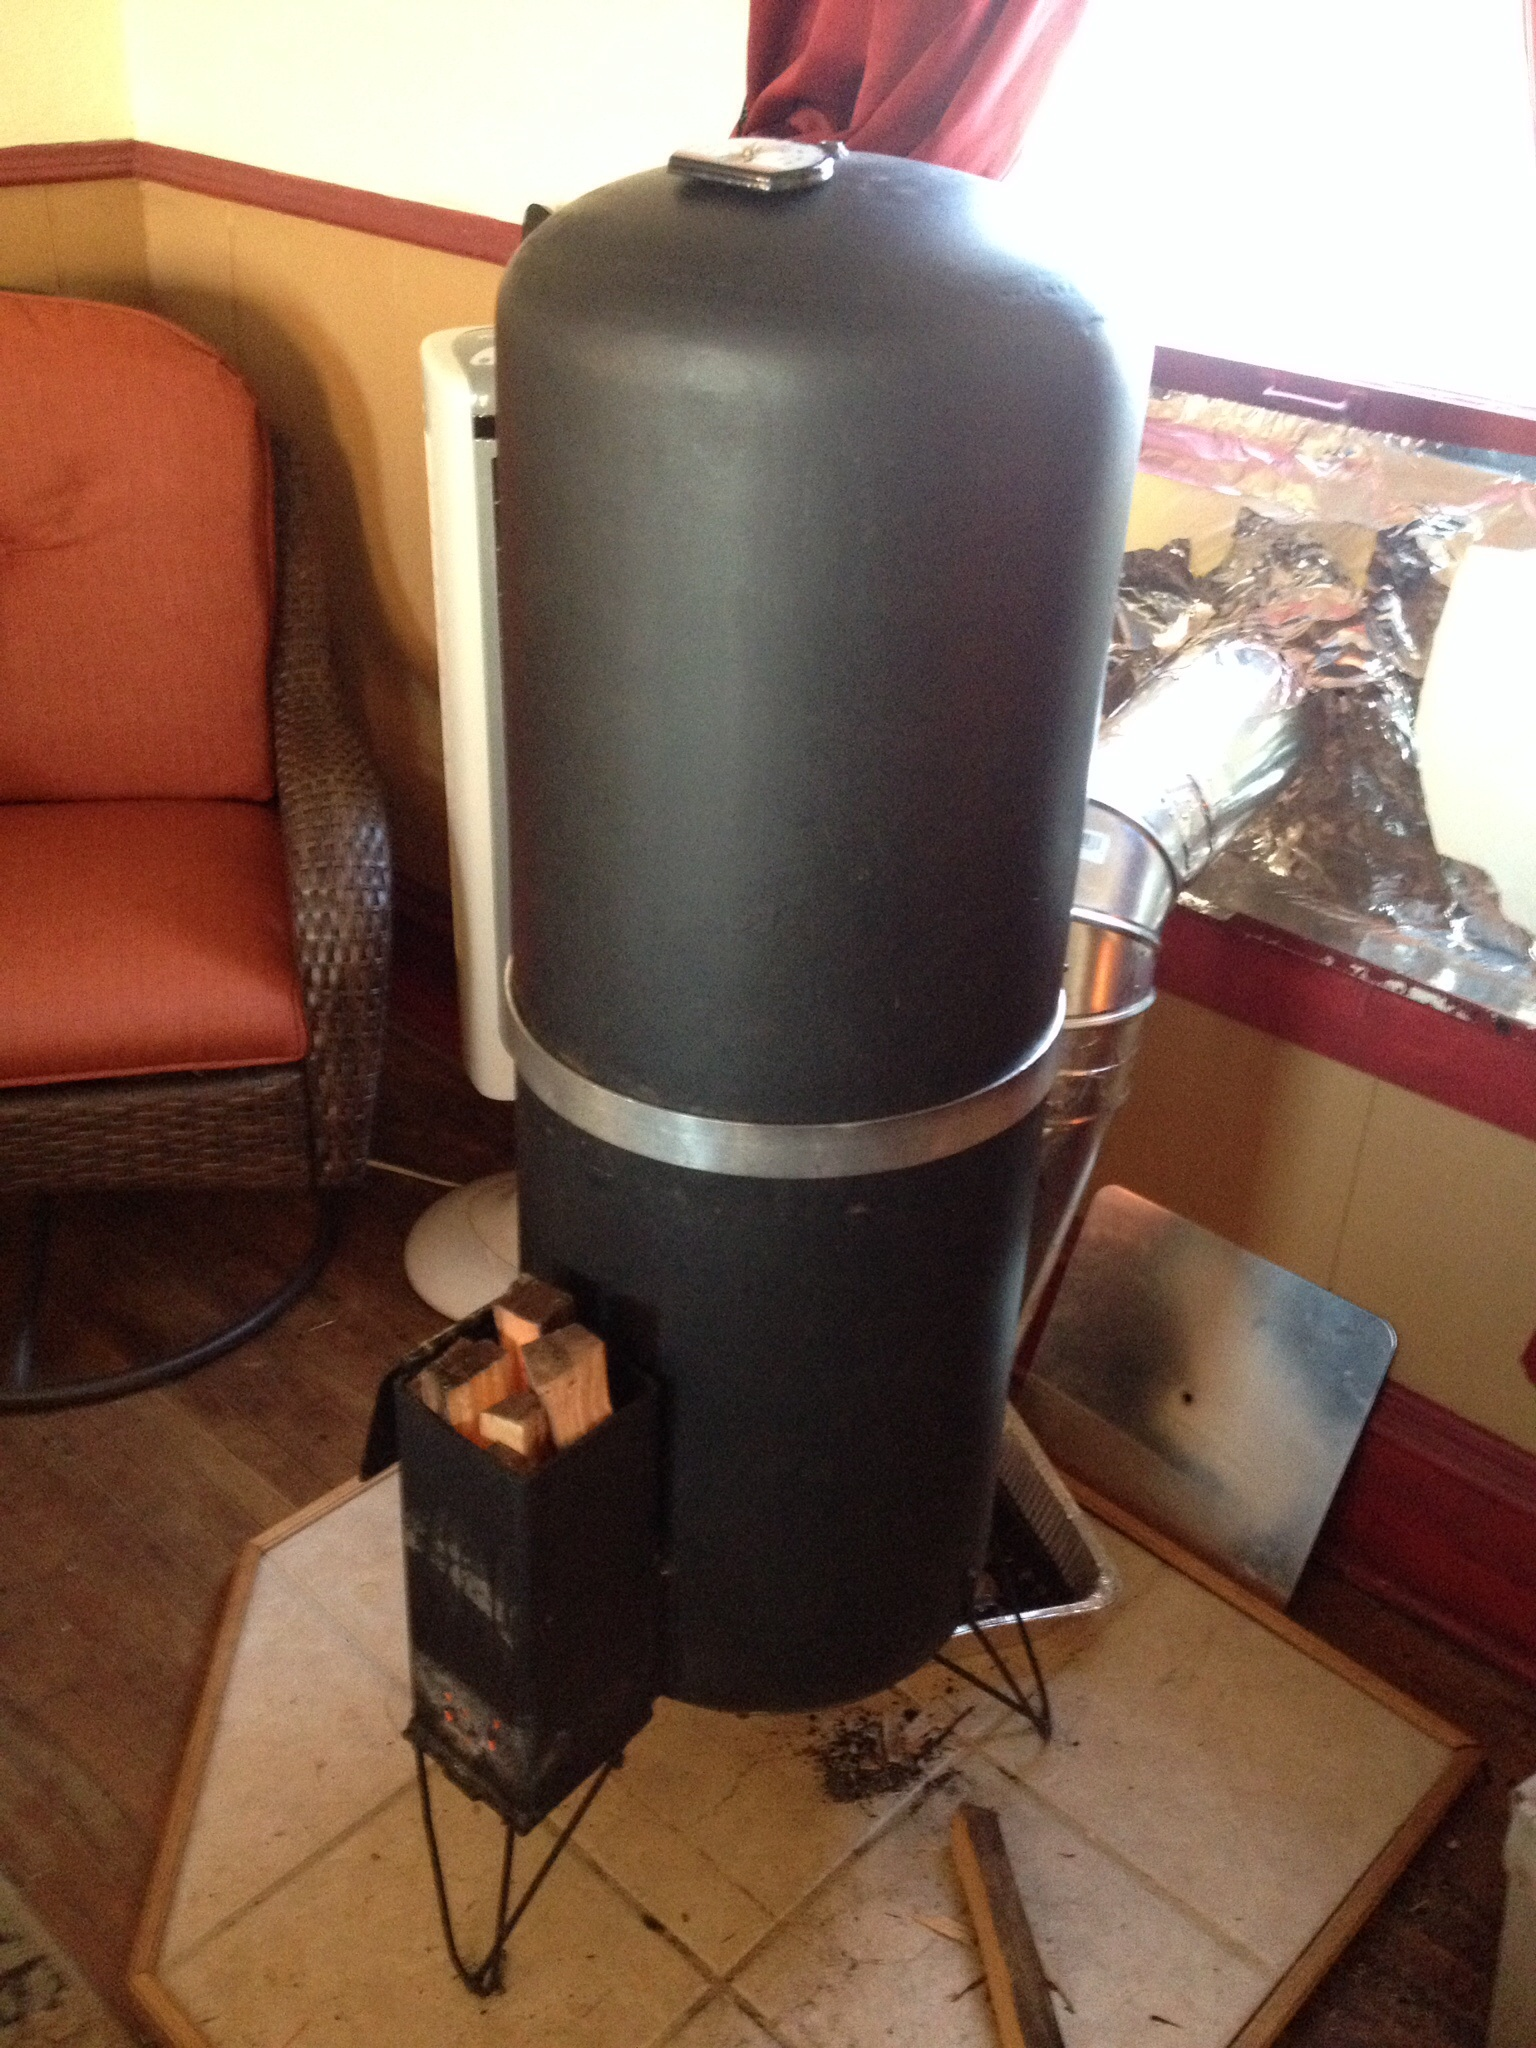 New Rocket Stove Project Rocket Stoves Forum At Permies